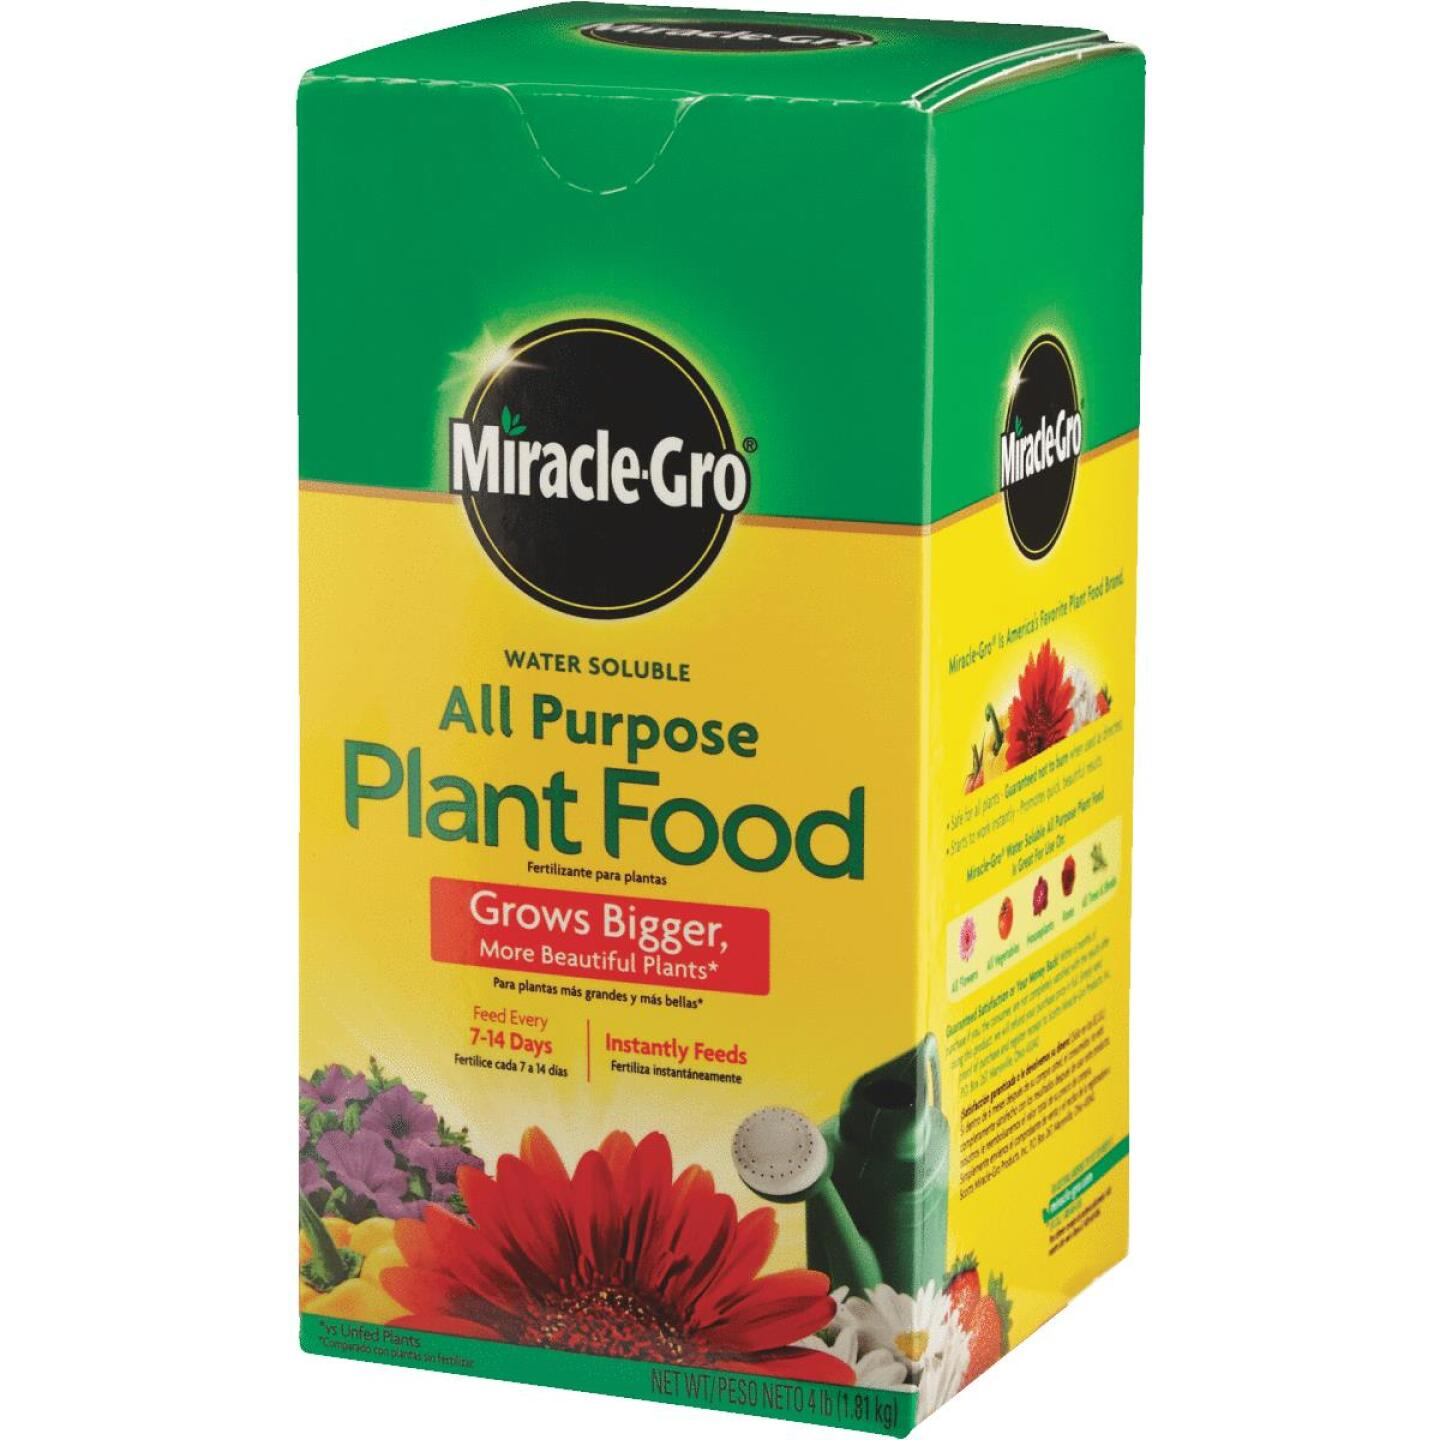 Miracle-Gro 4 Lb. 24-8-16 All Purpose Dry Plant Food Image 5